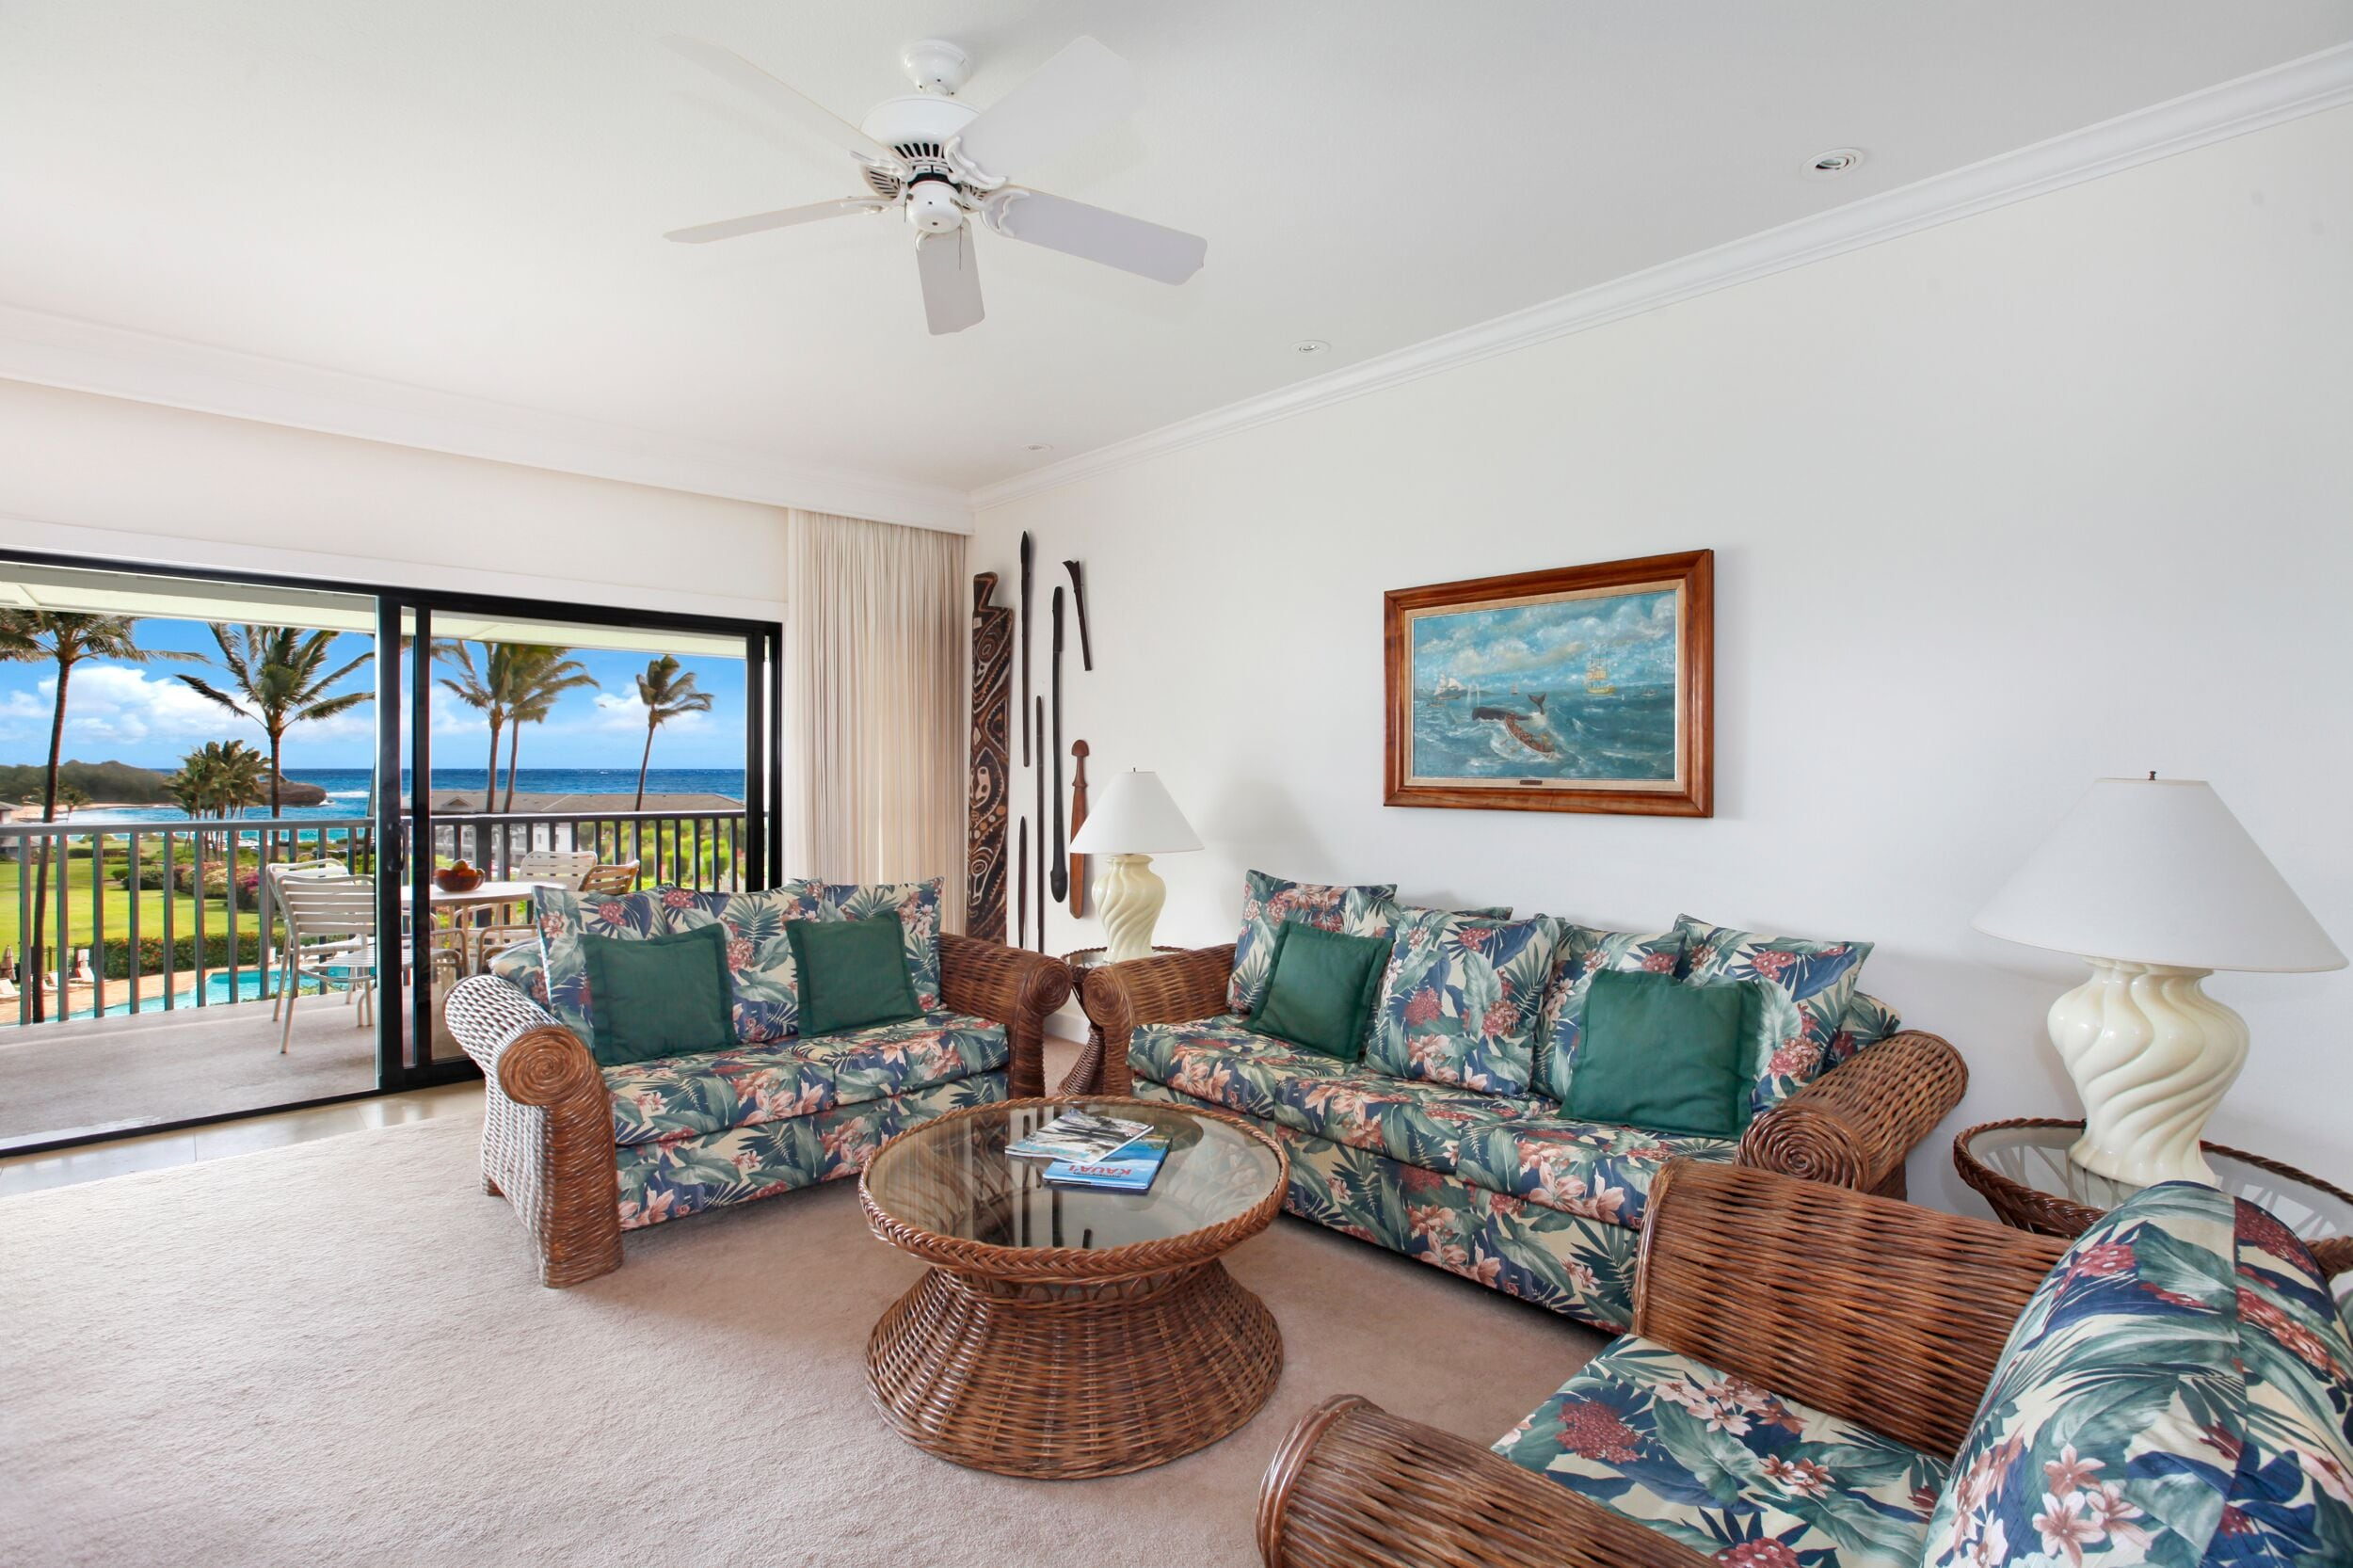 Property Image 2 - Fantastic Private Abode Near Gorgeous Beaches